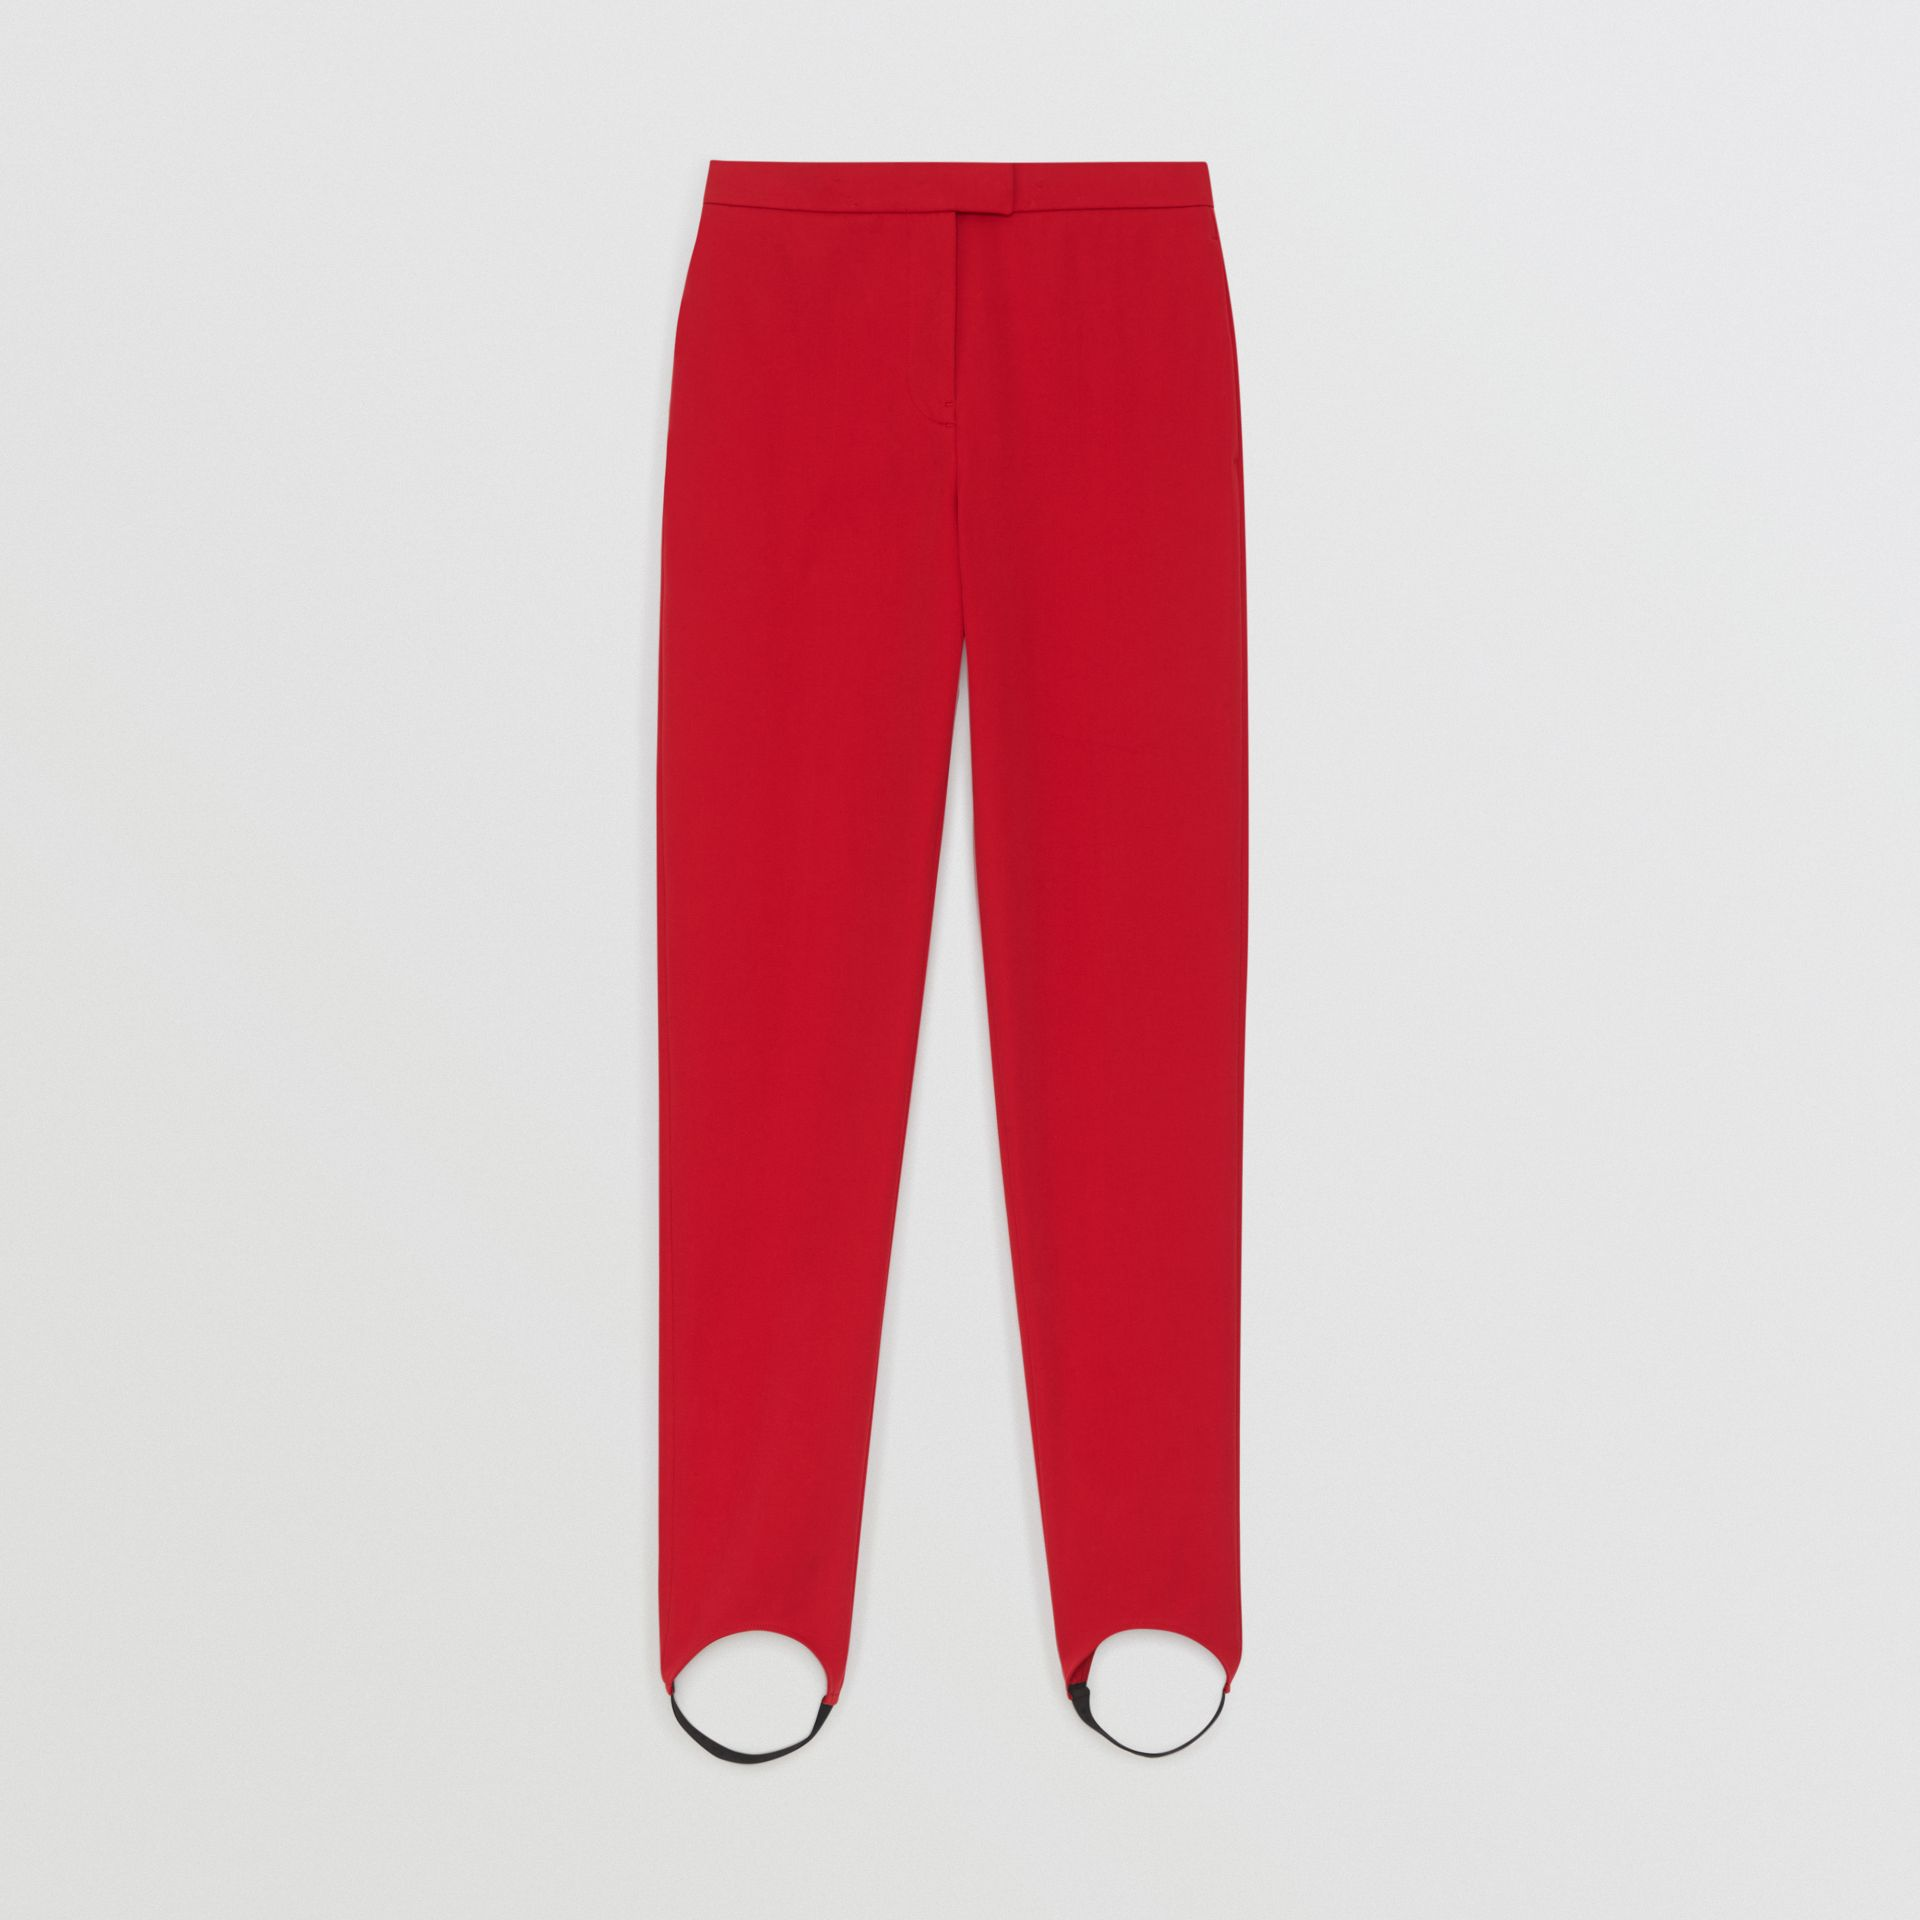 Cotton Blend Tailored Jodhpurs in Bright Red - Women | Burberry - gallery image 3